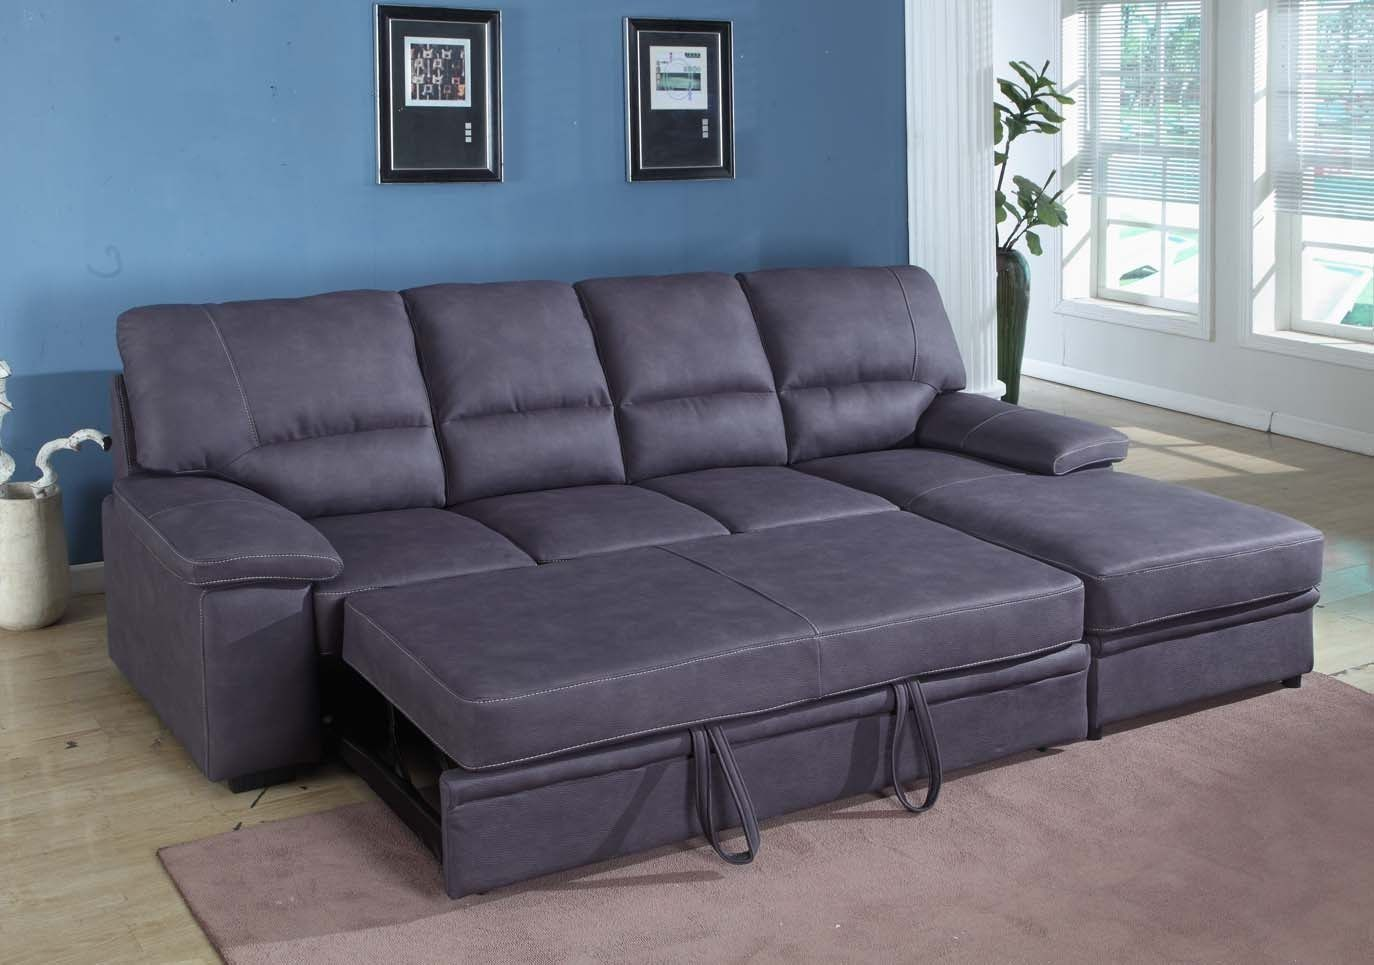 awesome Comfy Sectionals , Fresh Comfy Sectionals 97 About Remodel Modern  Sofa Inspiration with Comfy Sectionals